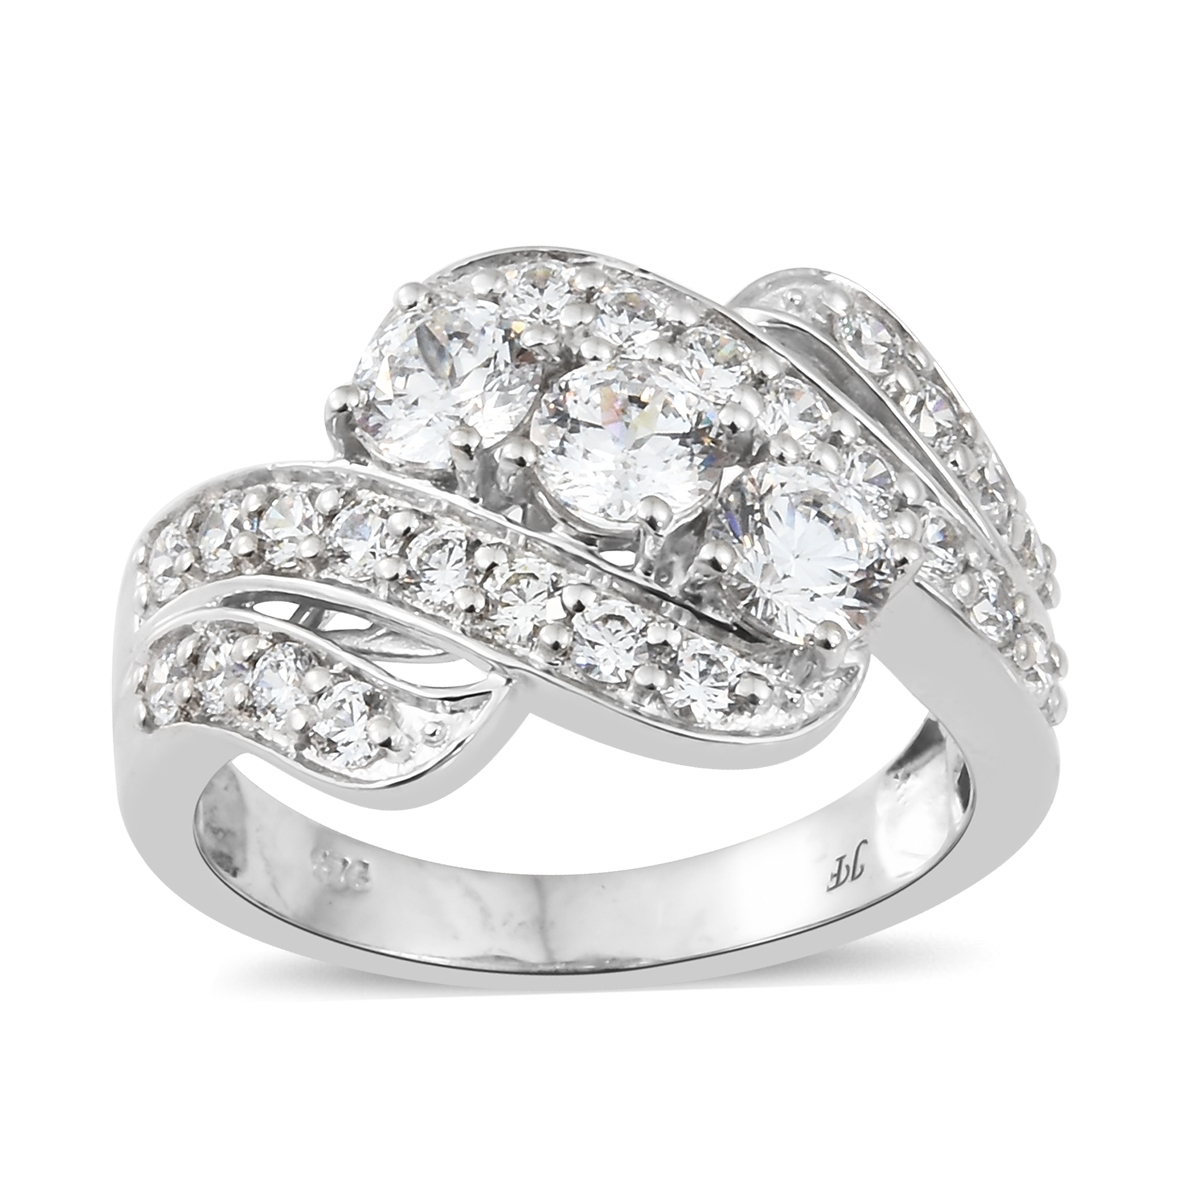 ed9f1c47e J Francis - Platinum Over Sterling Silver Ring Made with SWAROVSKI ZIRCONIA  (Size 5.0) TGW 4.59 cts. | Fashion | Rings | Jewelry | online-store | Shop  LC